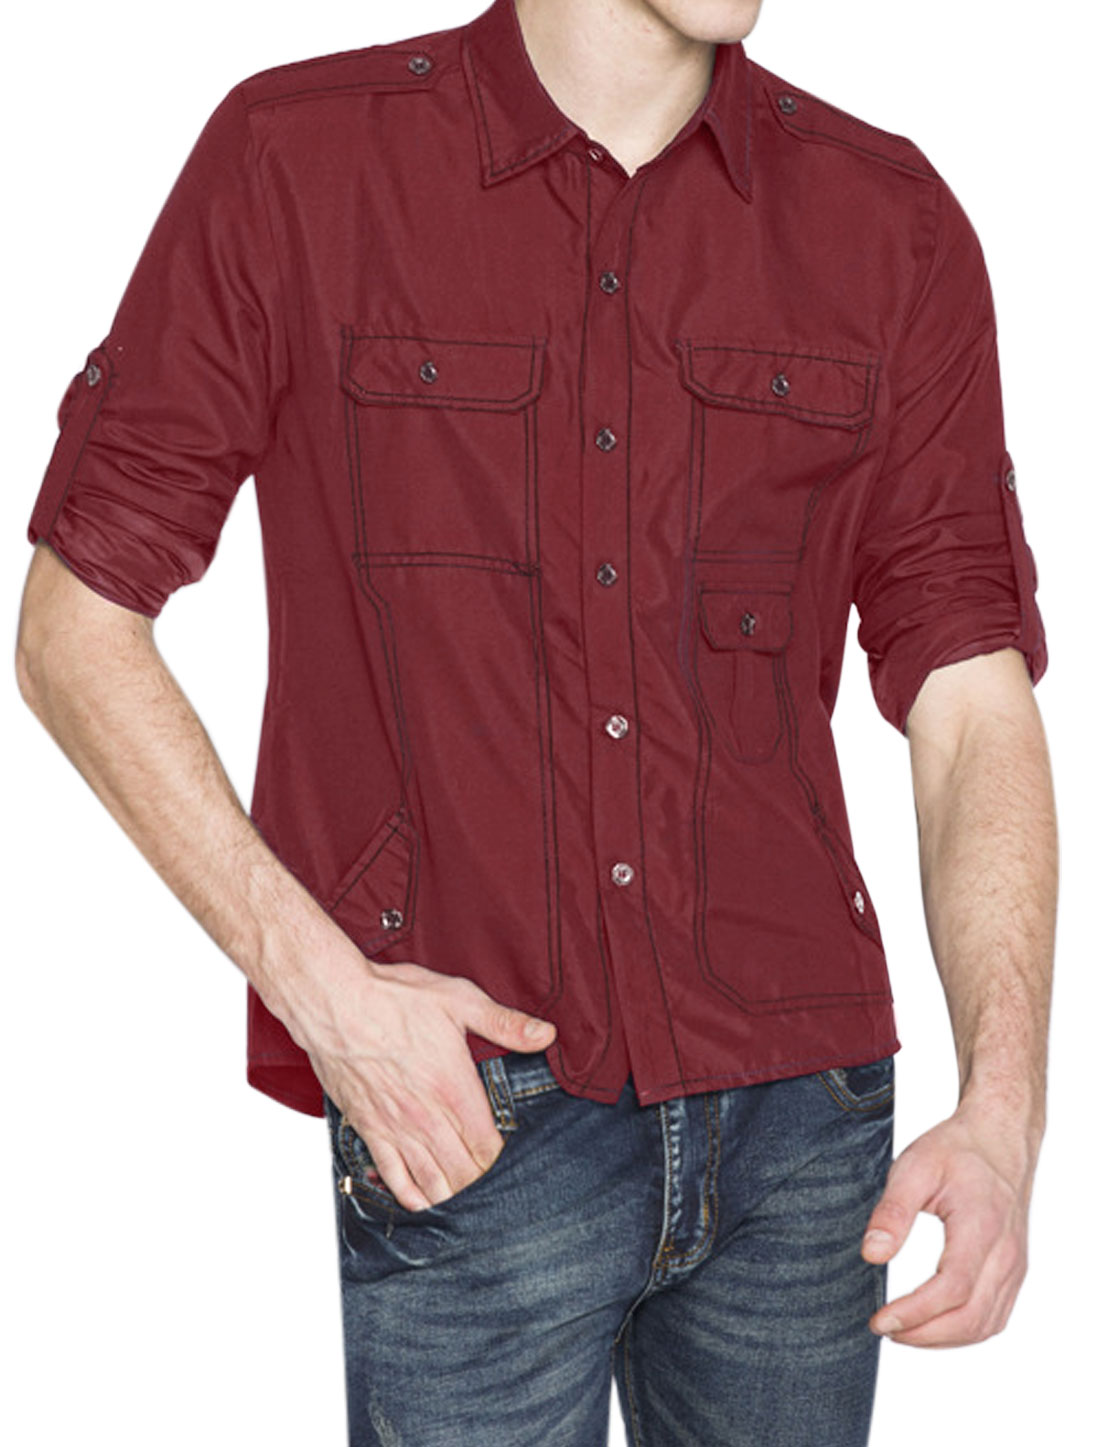 Men Single Breasted Rolled Up Sleeves Five Pockets Casual Shirt Red M